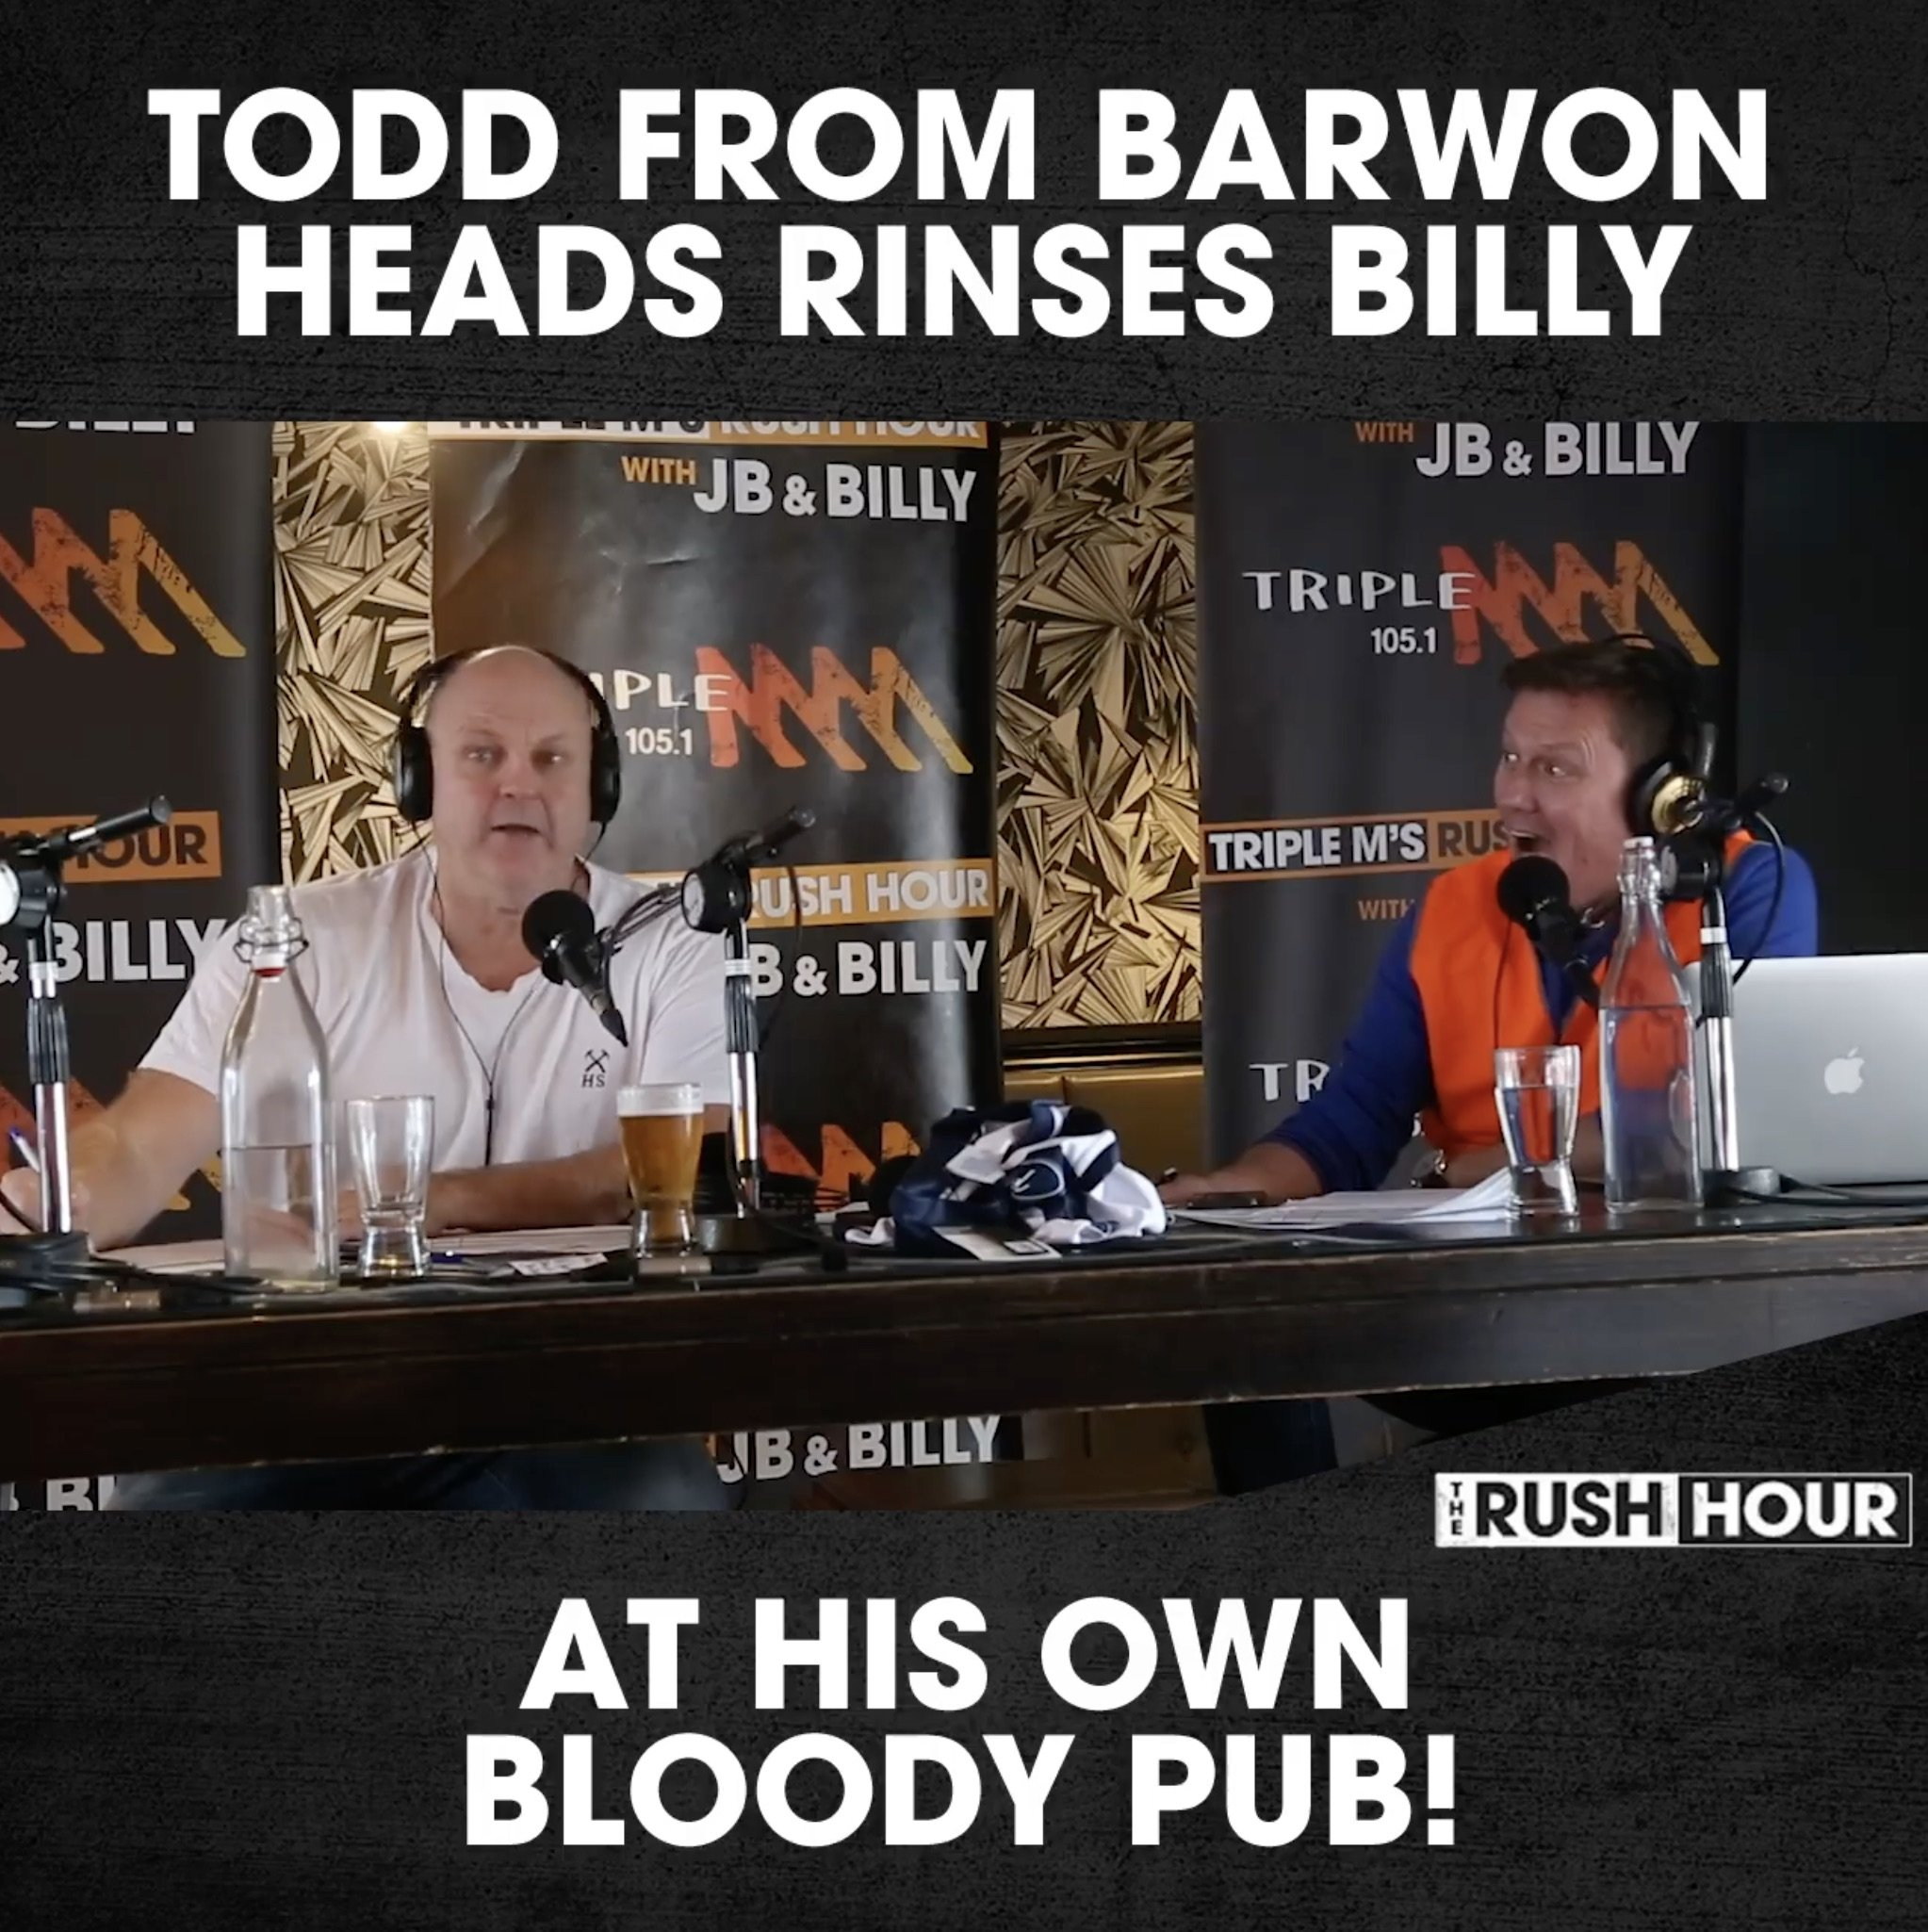 Todd from Barwon Head rinses Billy in his own pub